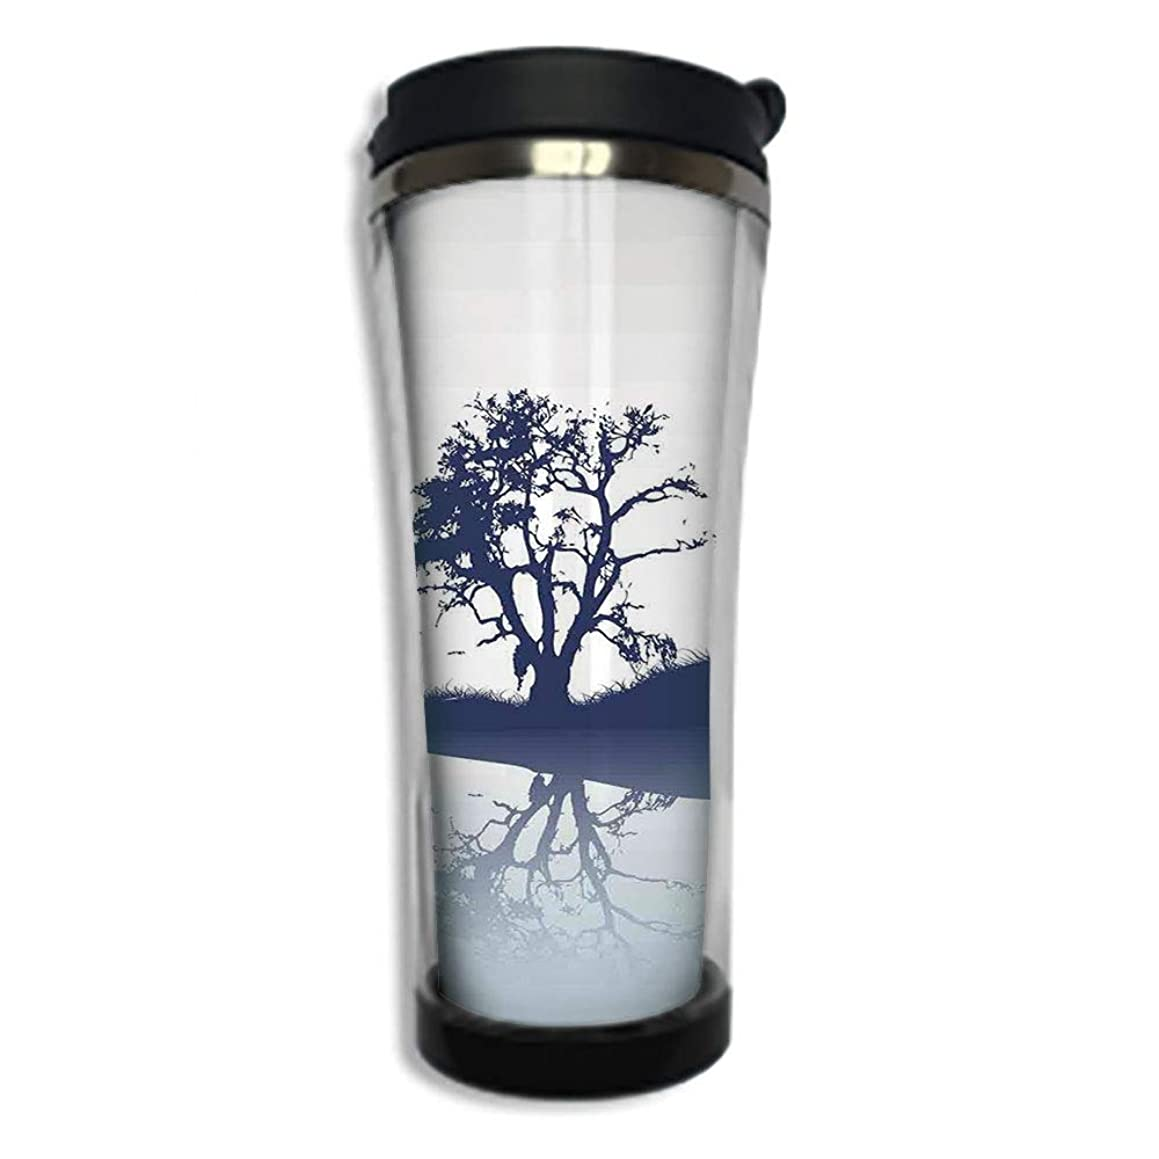 Travel Coffee Mug 3D Printed Portable Vacuum Cup,Insulated Tea Cup Water Bottle Tumblers for Drinking with Lid 14.2oz(420 ml)by,Nature,Silhouette of Lonely Tree by Lake with Mirror Effects Melancholy